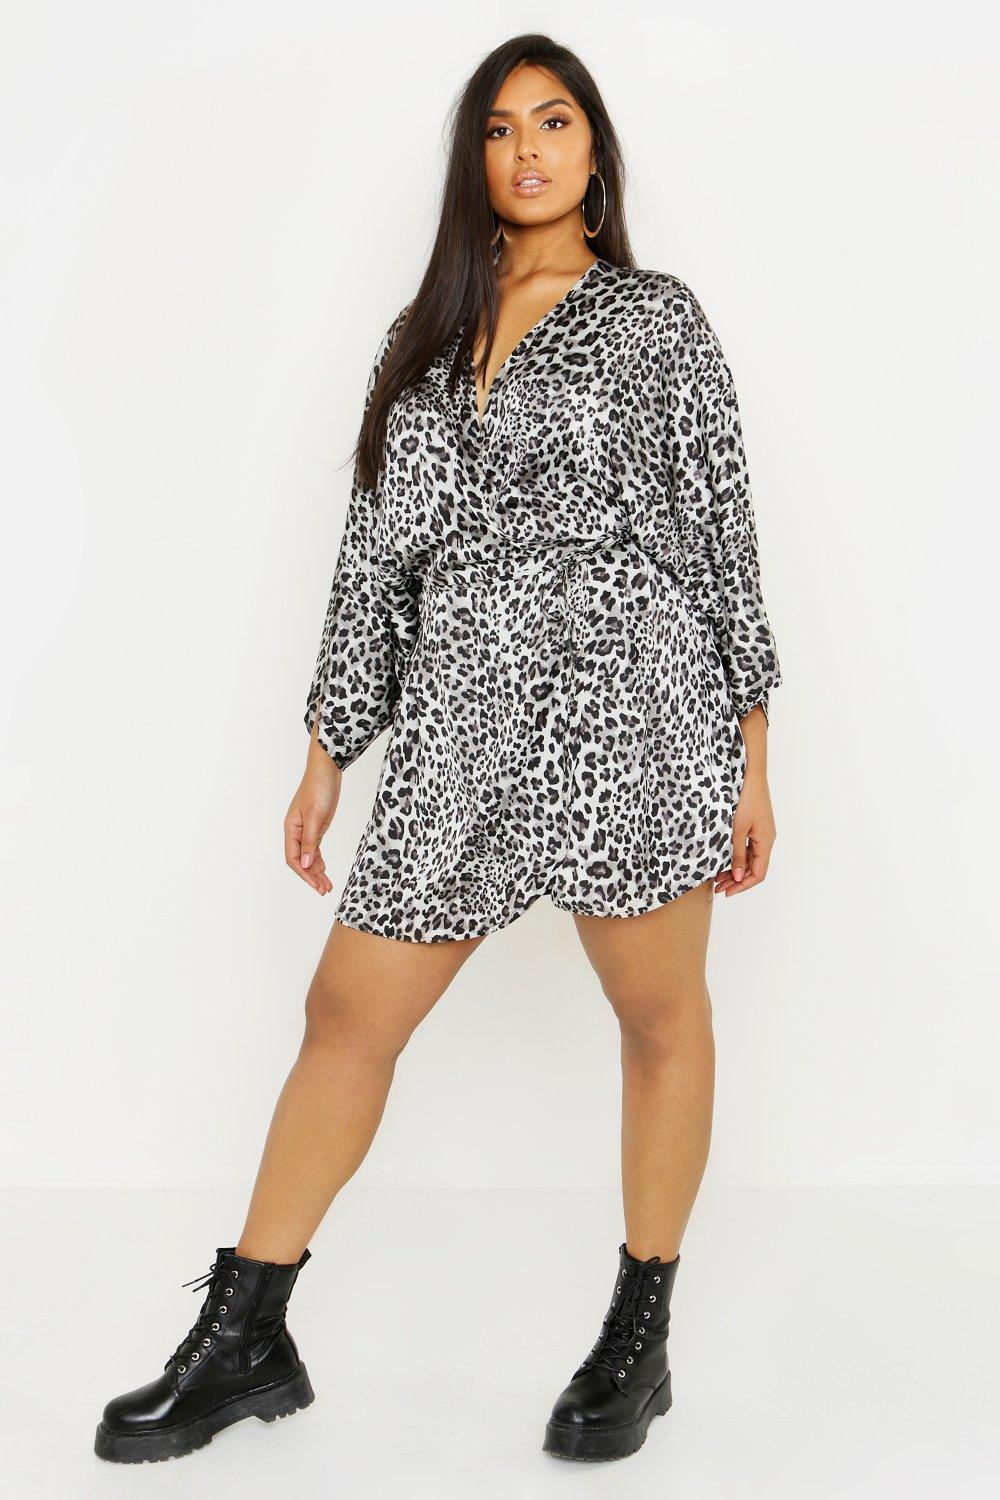 57517b02bcac ... Satin Leopard Print Wrap Dress. Hover to zoom